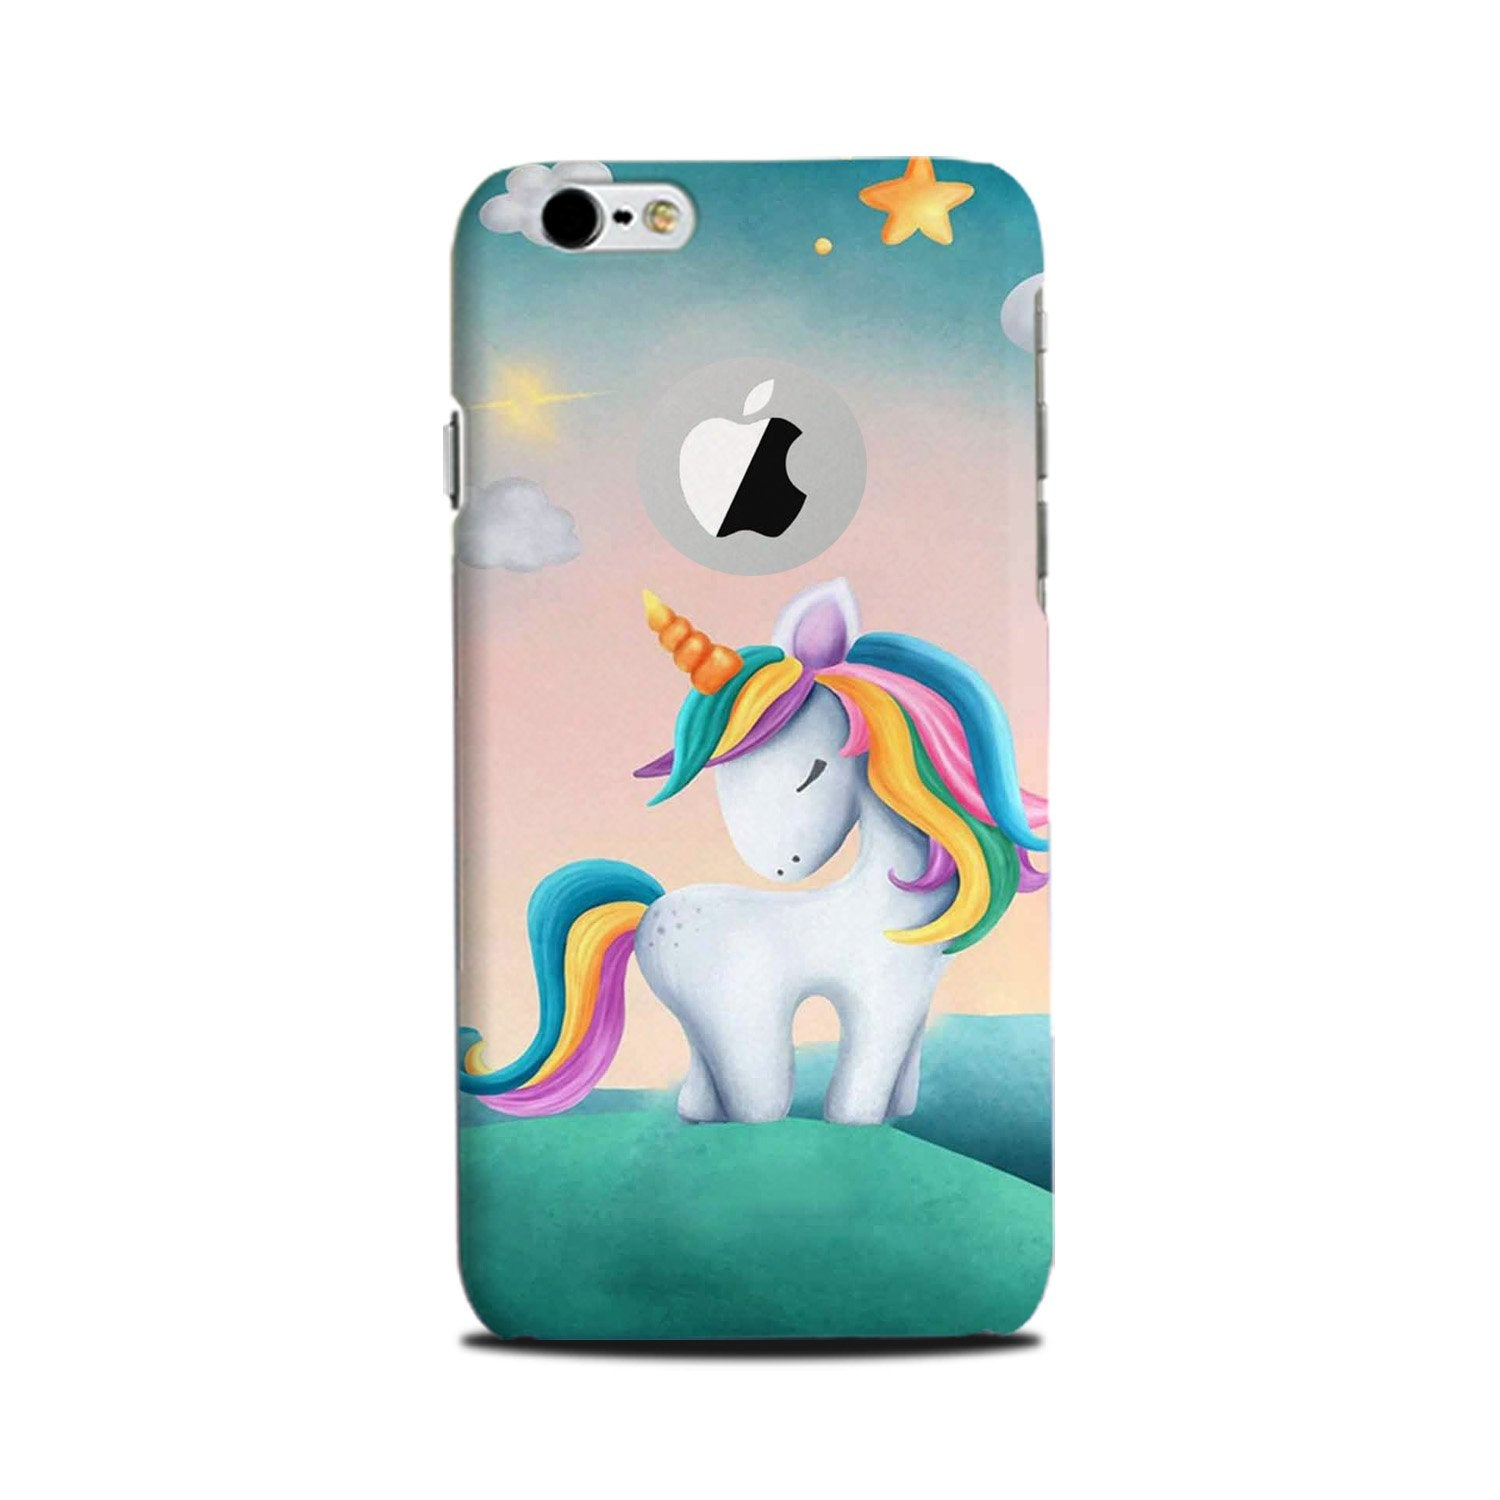 Unicorn Mobile Back Case for iPhone 6 Plus / 6s Plus Logo Cut  (Design - 366)